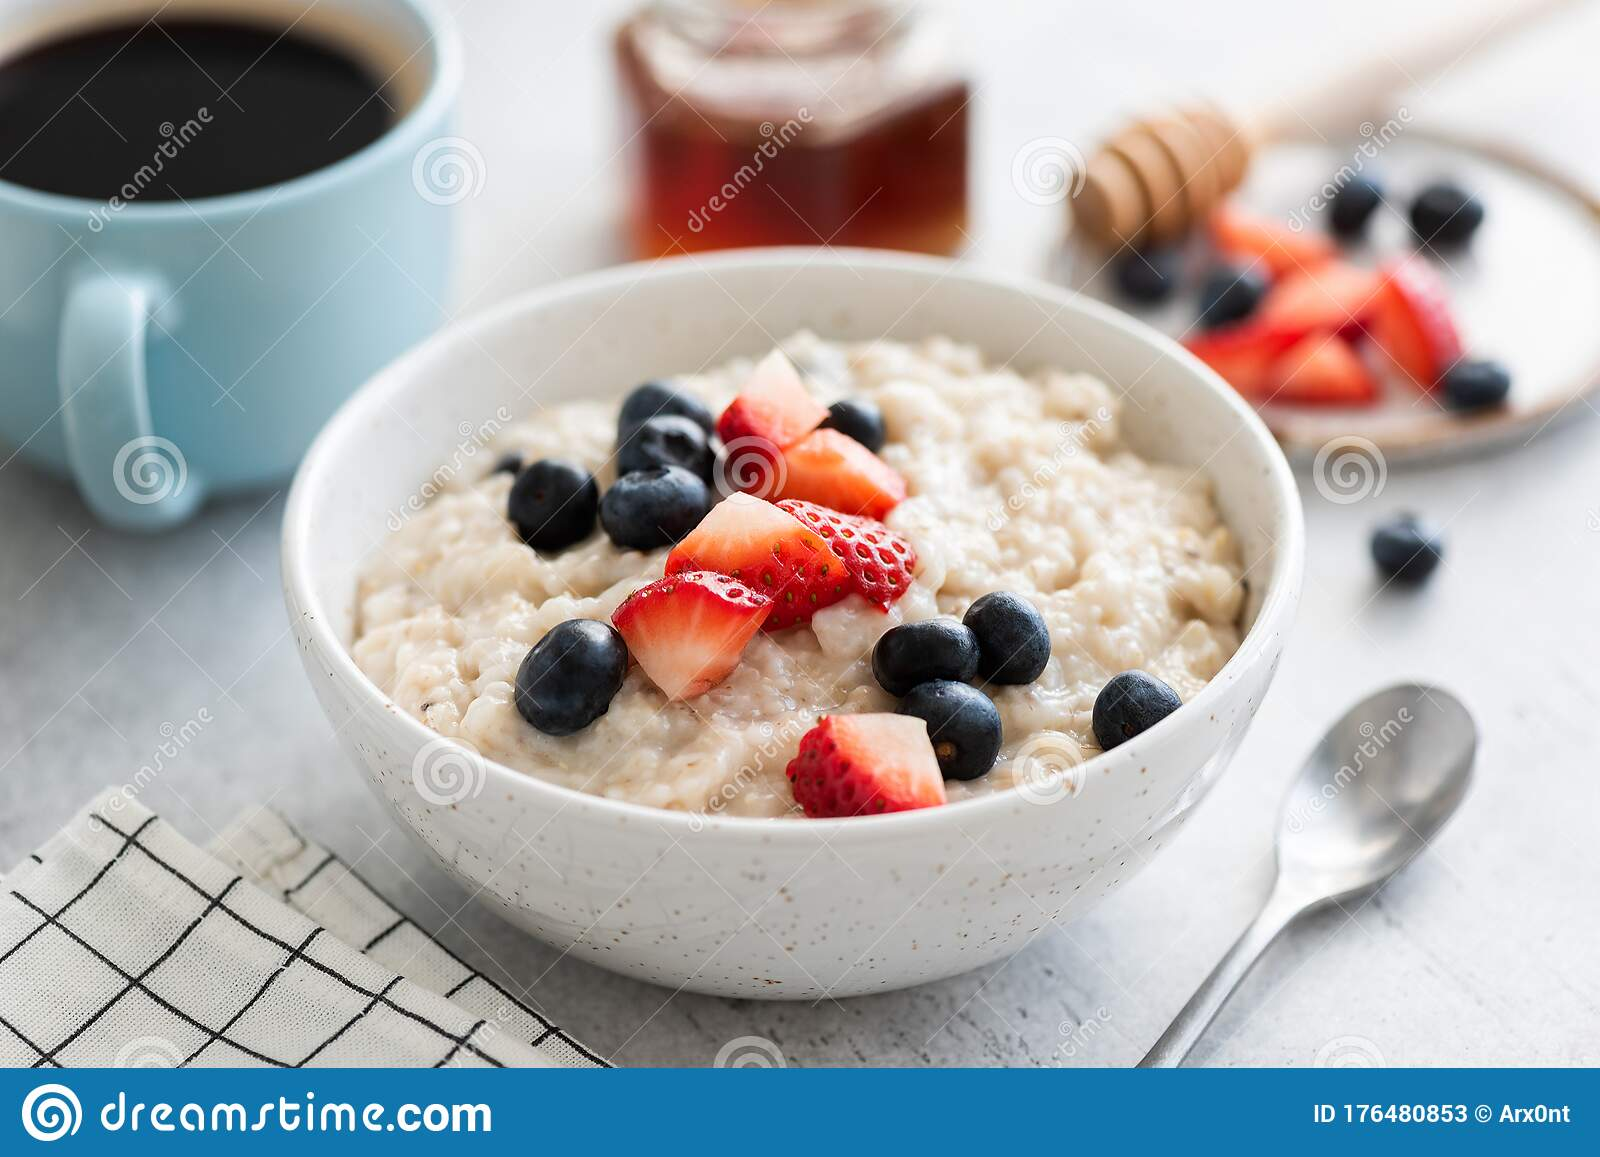 Oatmeal Porridge With Berries Honey And Cup Of Coffee Stock Image Image Of Greek Bowl 176480853